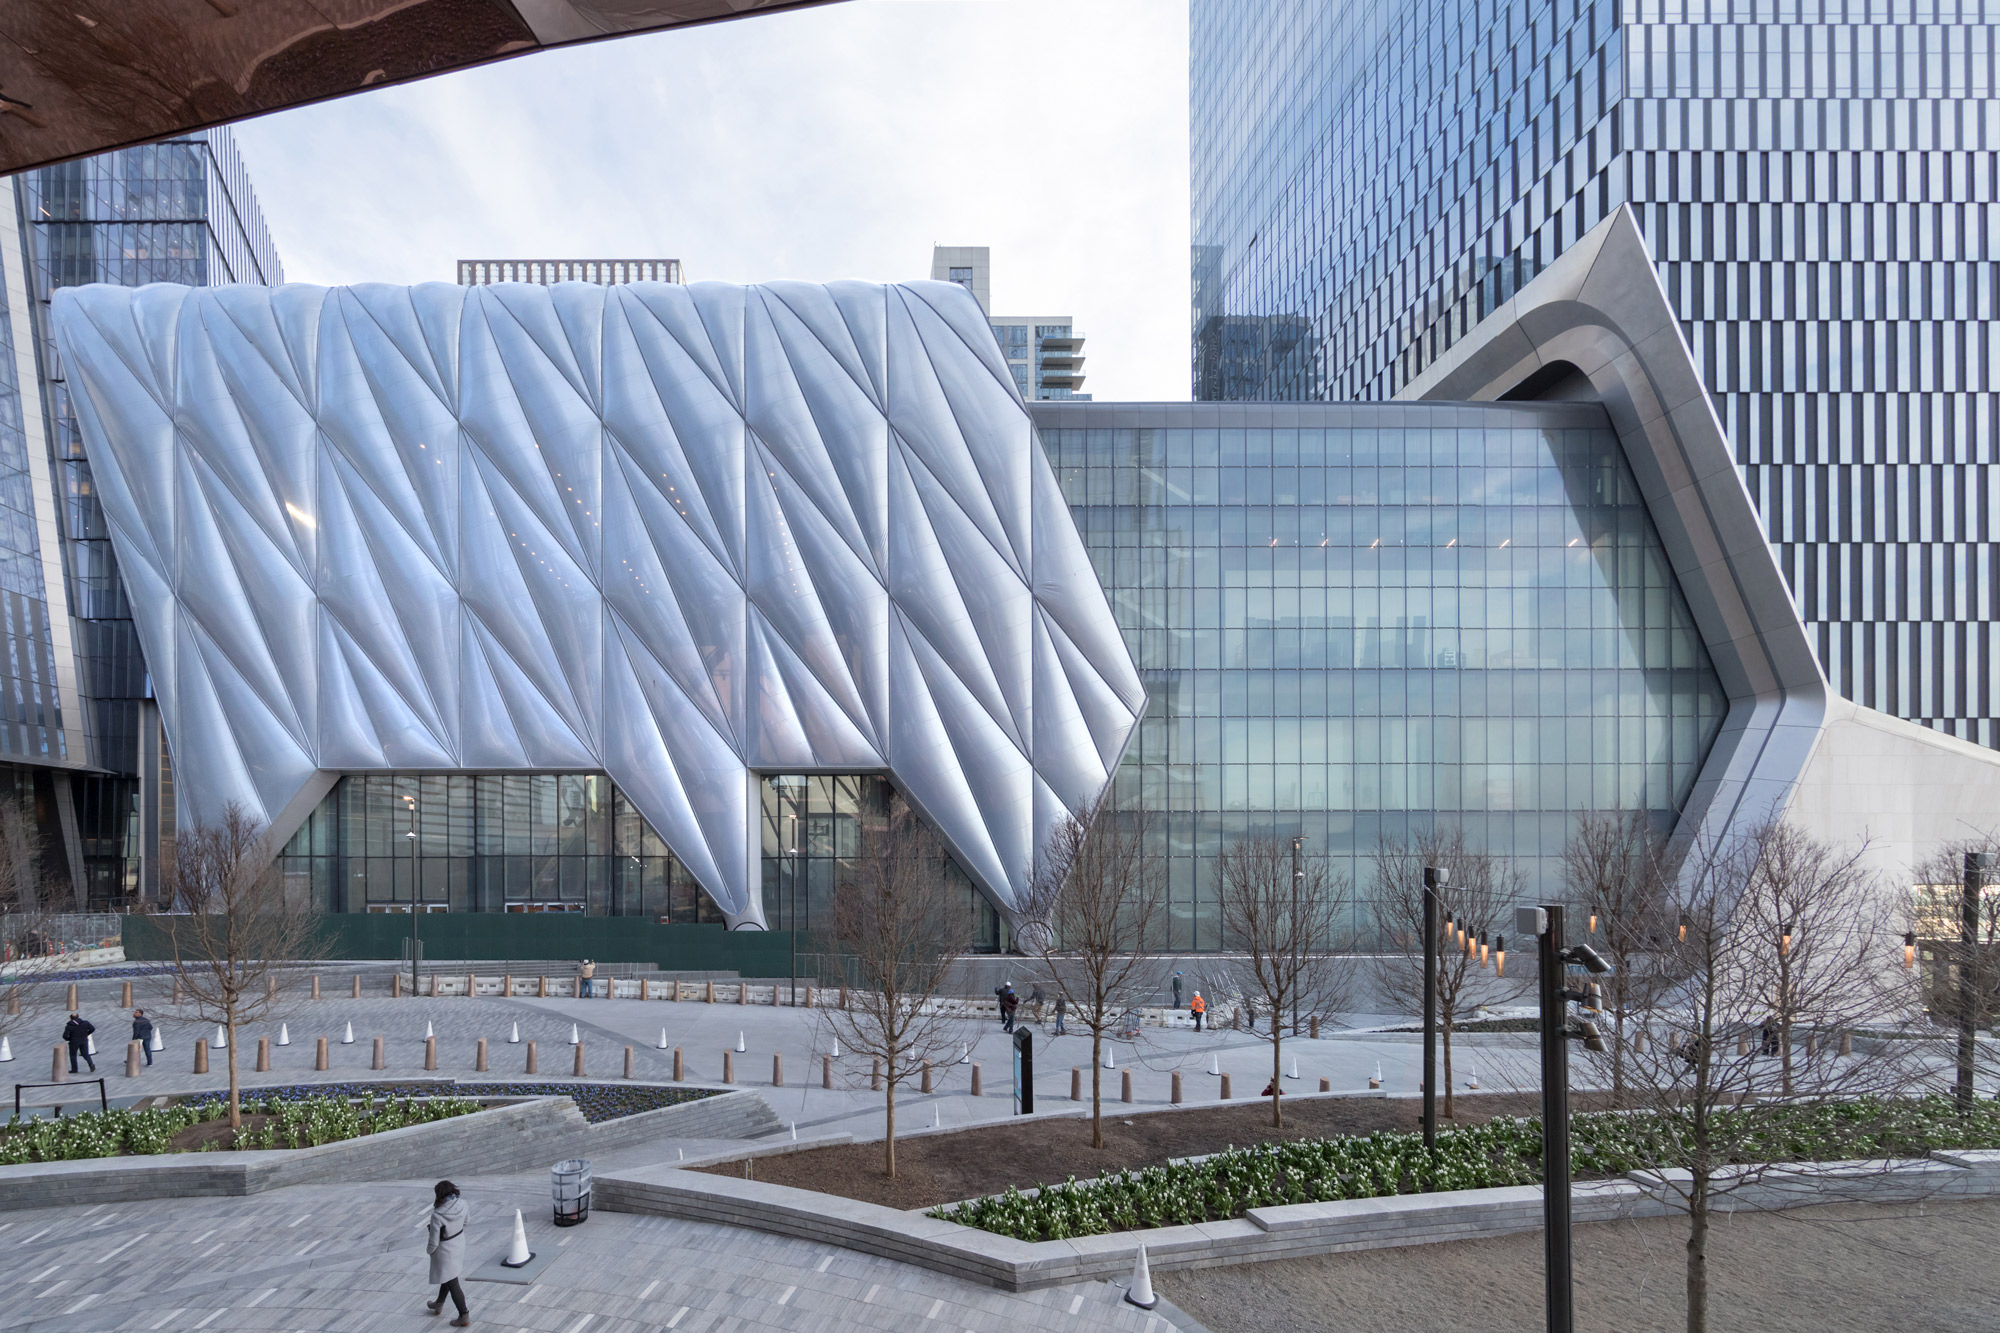 The Shed, Diller Scofidio + Renfro © Iwan-Baan